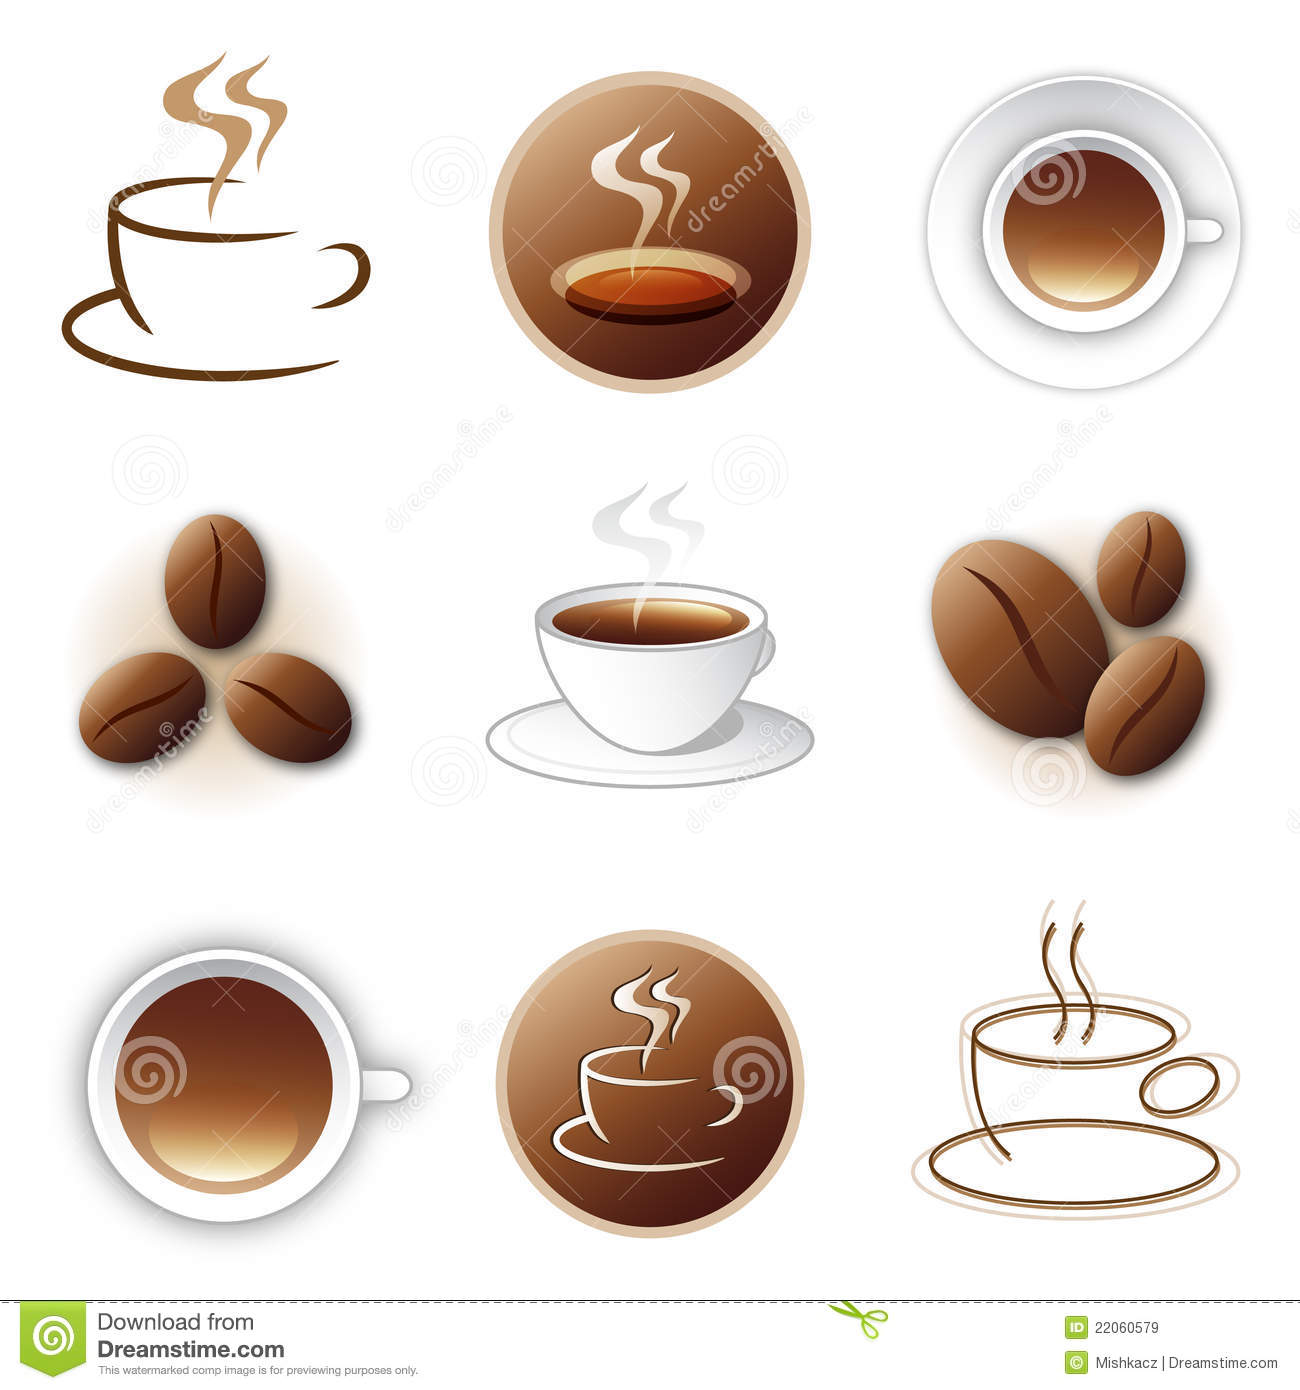 Art logo logo s coffee logo coffee shop coffee design shop logo coffee - Aroma Background Cafeteria Coffee Collection Company Cup Design Element Hot House Icon Isolated Logo Restaurant Shop